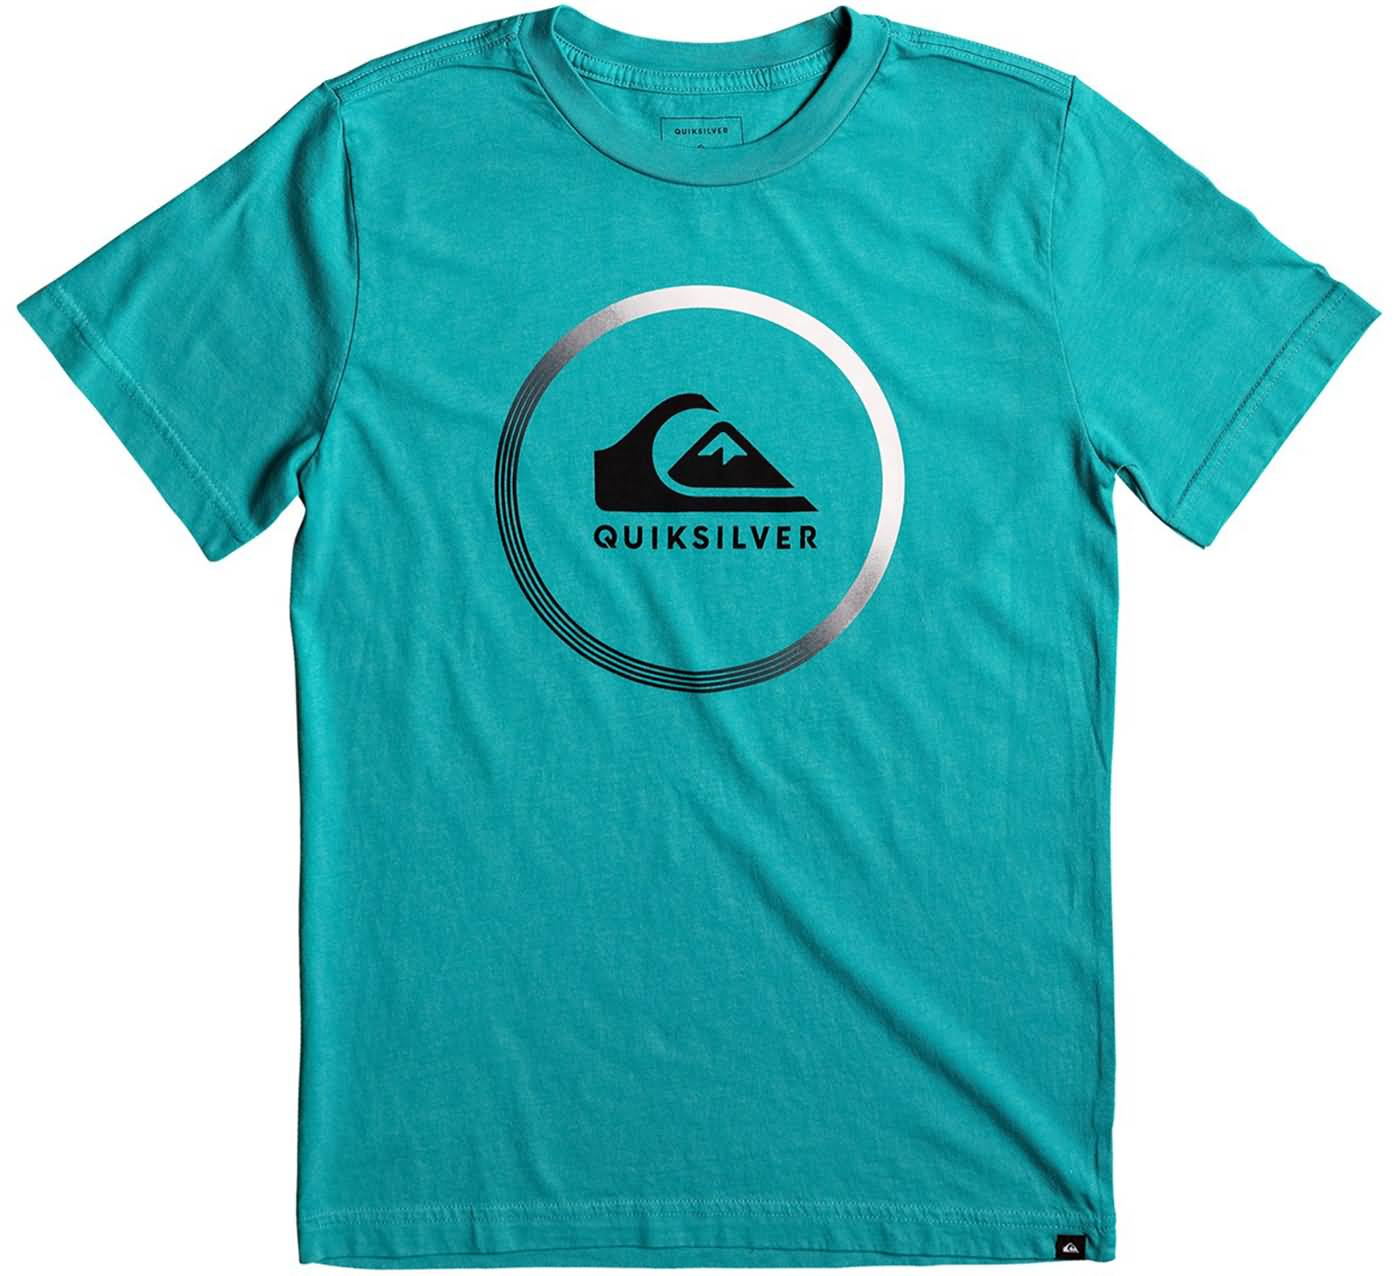 Quiksilver Surf Fall 2017 Youth Boys Lifestyle Beach Tees Lookbook